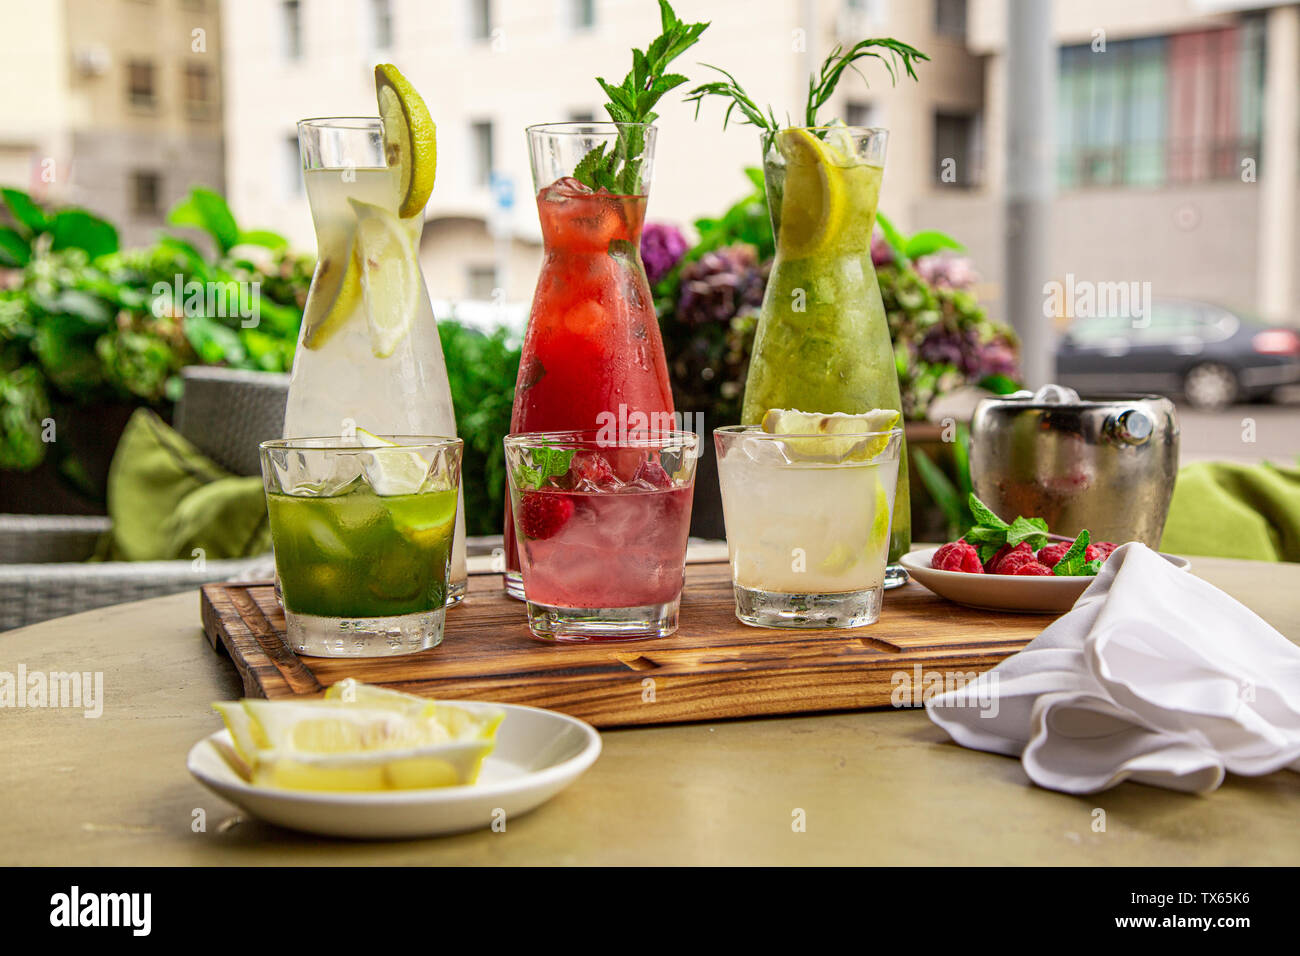 Summer soft drinks, a set of lemonades. Lemonades in jugs on the table, the ingredients of which they are made are arranged around. Stock Photo